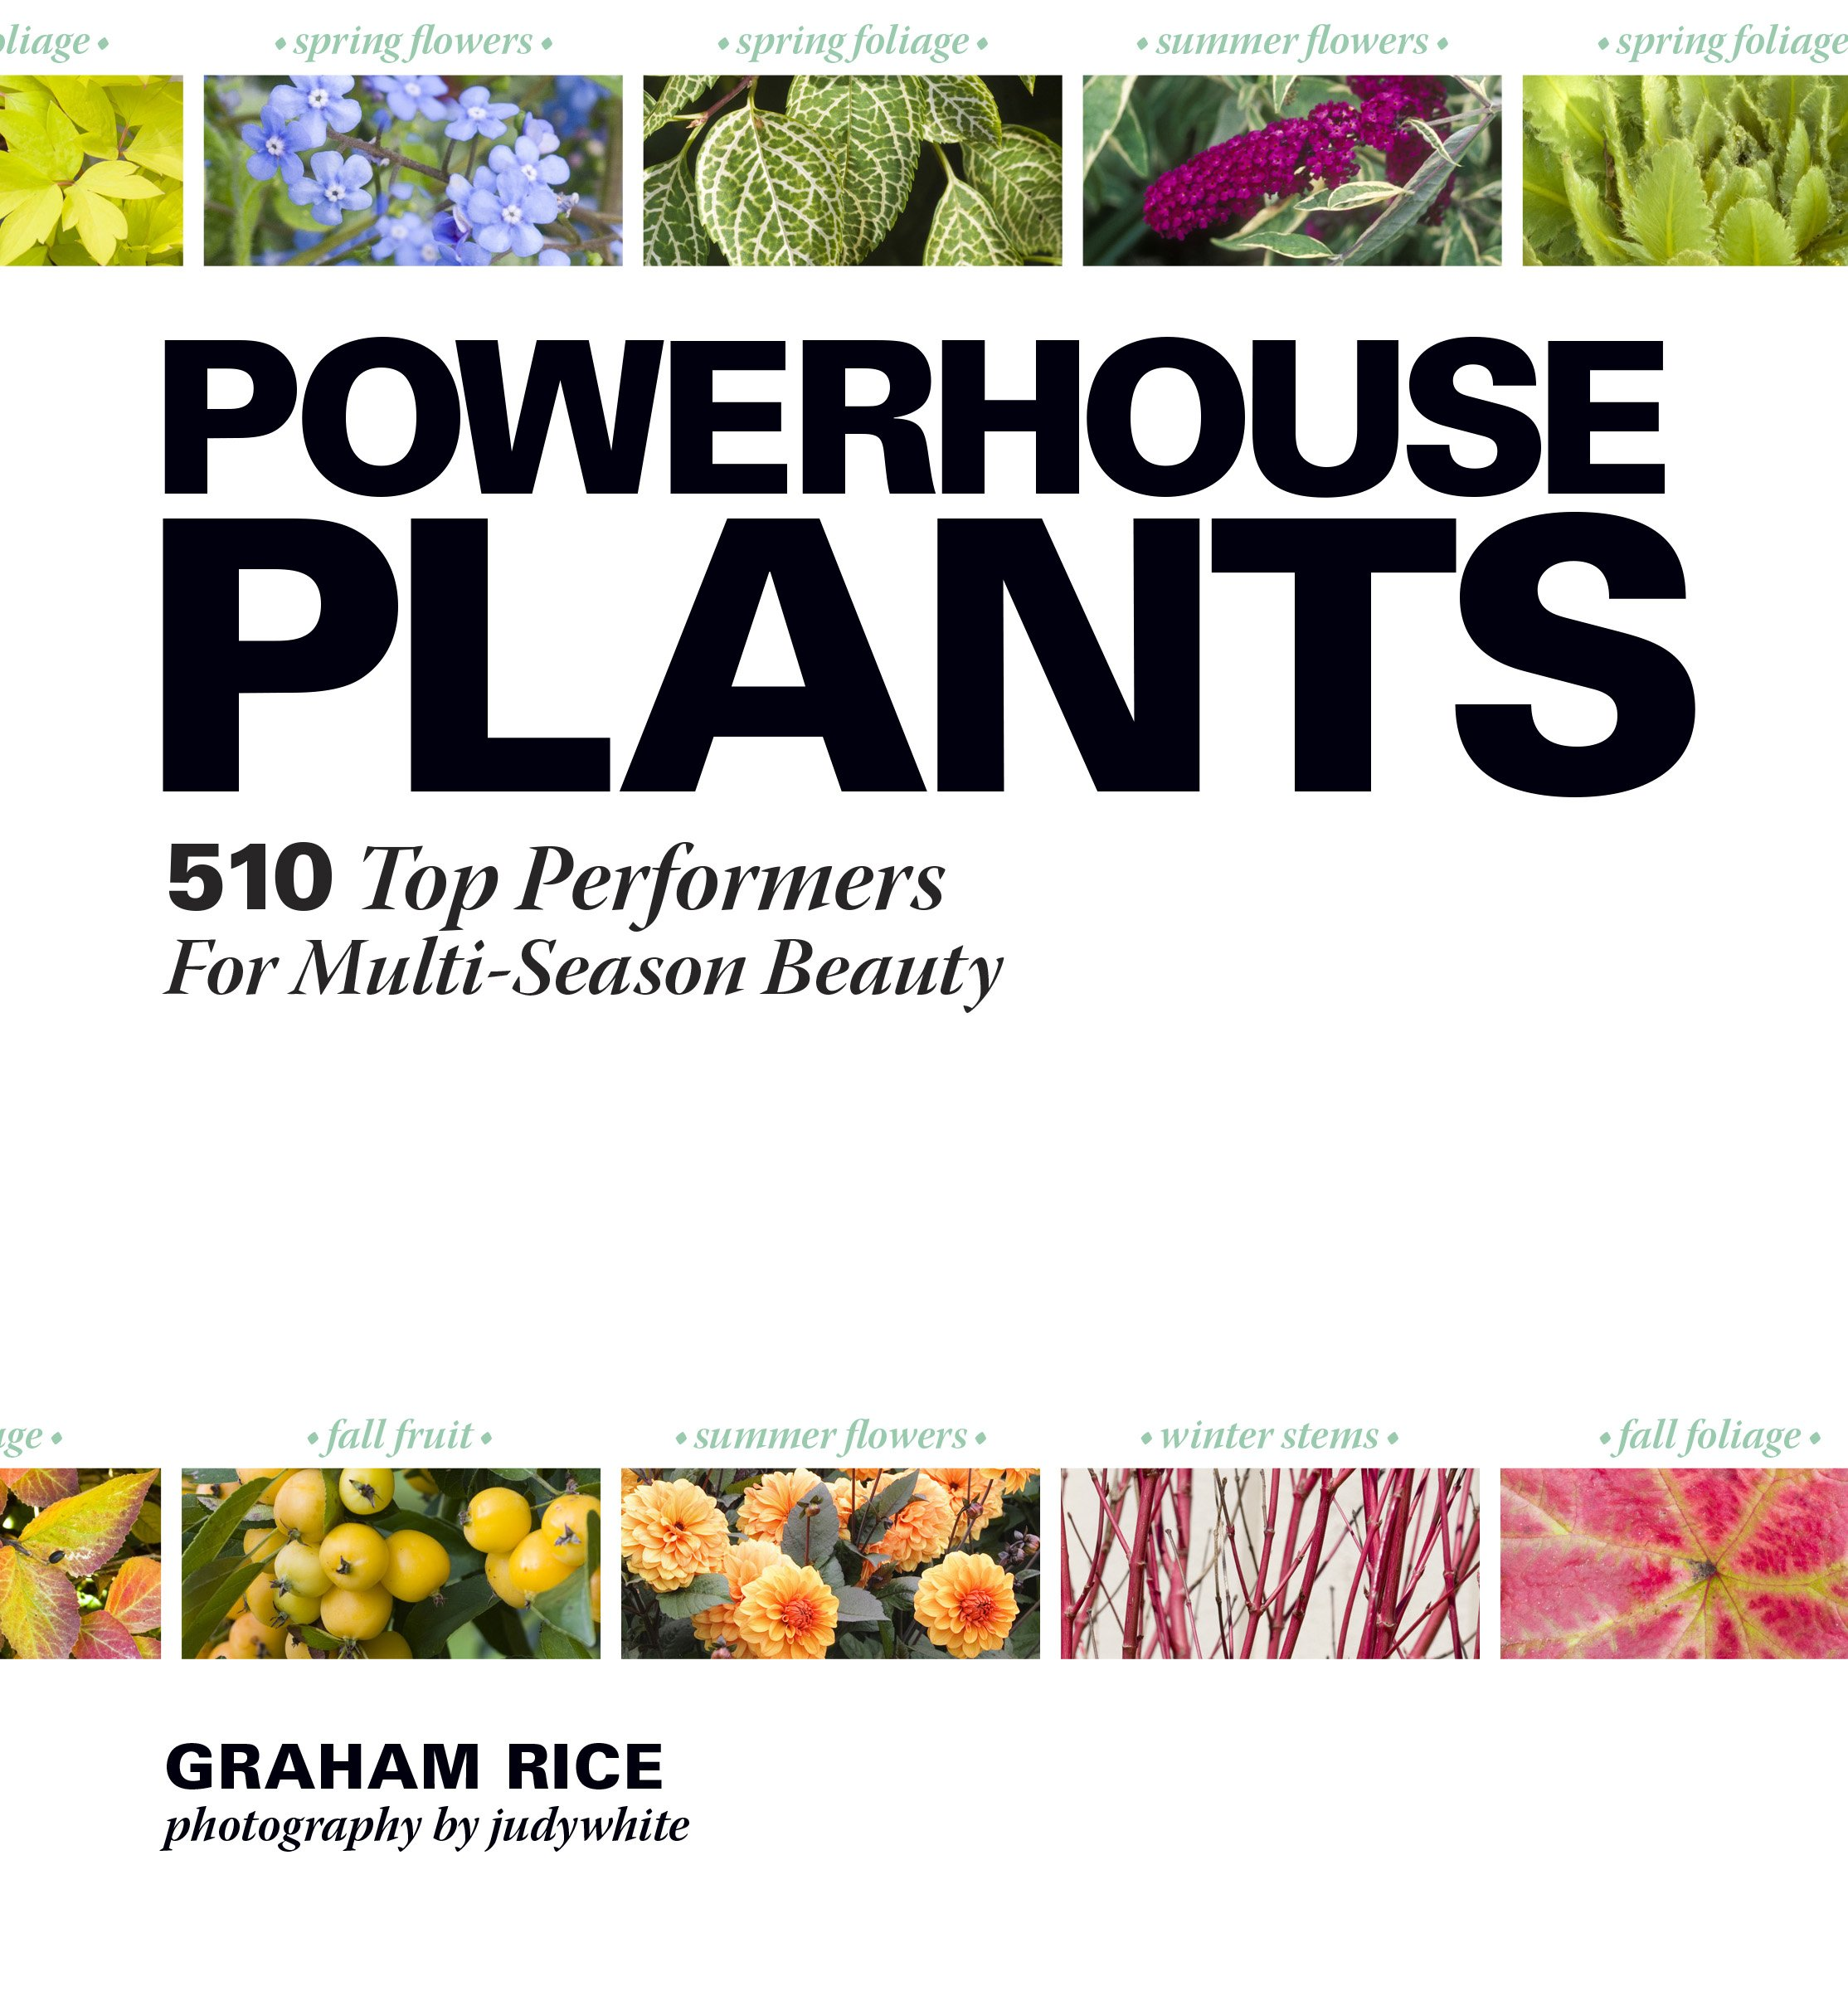 Powerhouse plants 510 top performers for multi season beauty powerhouse plants 510 top performers for multi season beauty graham rice judywhite 9781604692105 amazon books nvjuhfo Gallery